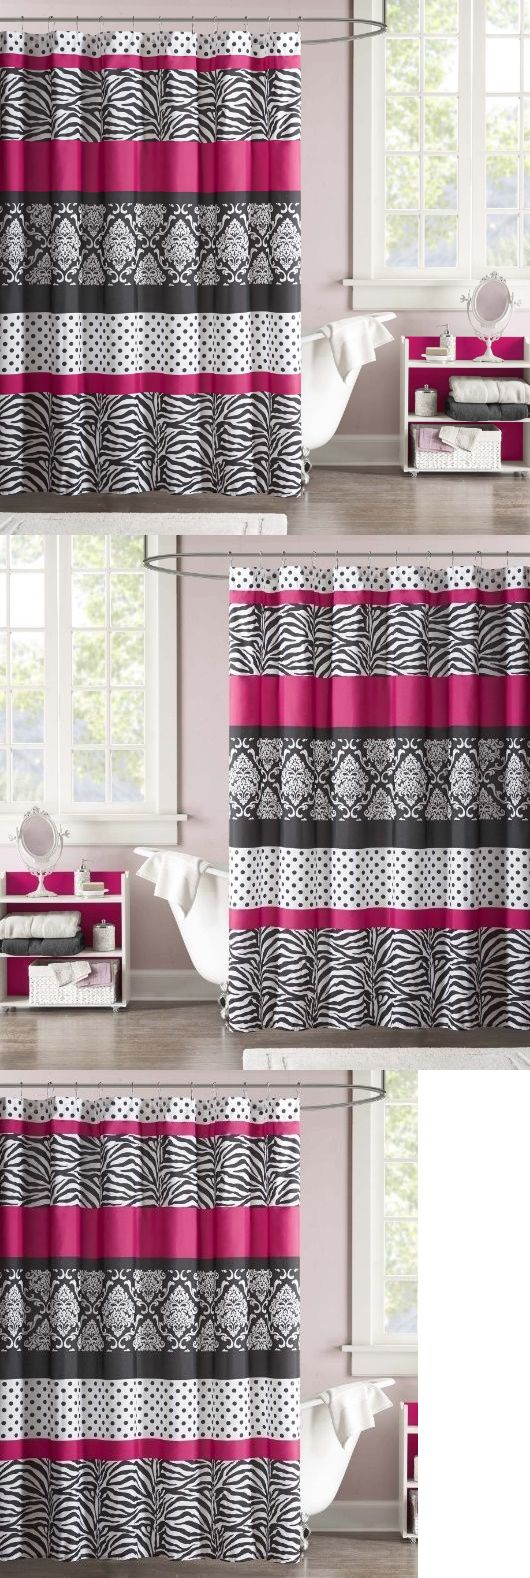 brown zebra print curtains others beautiful home design